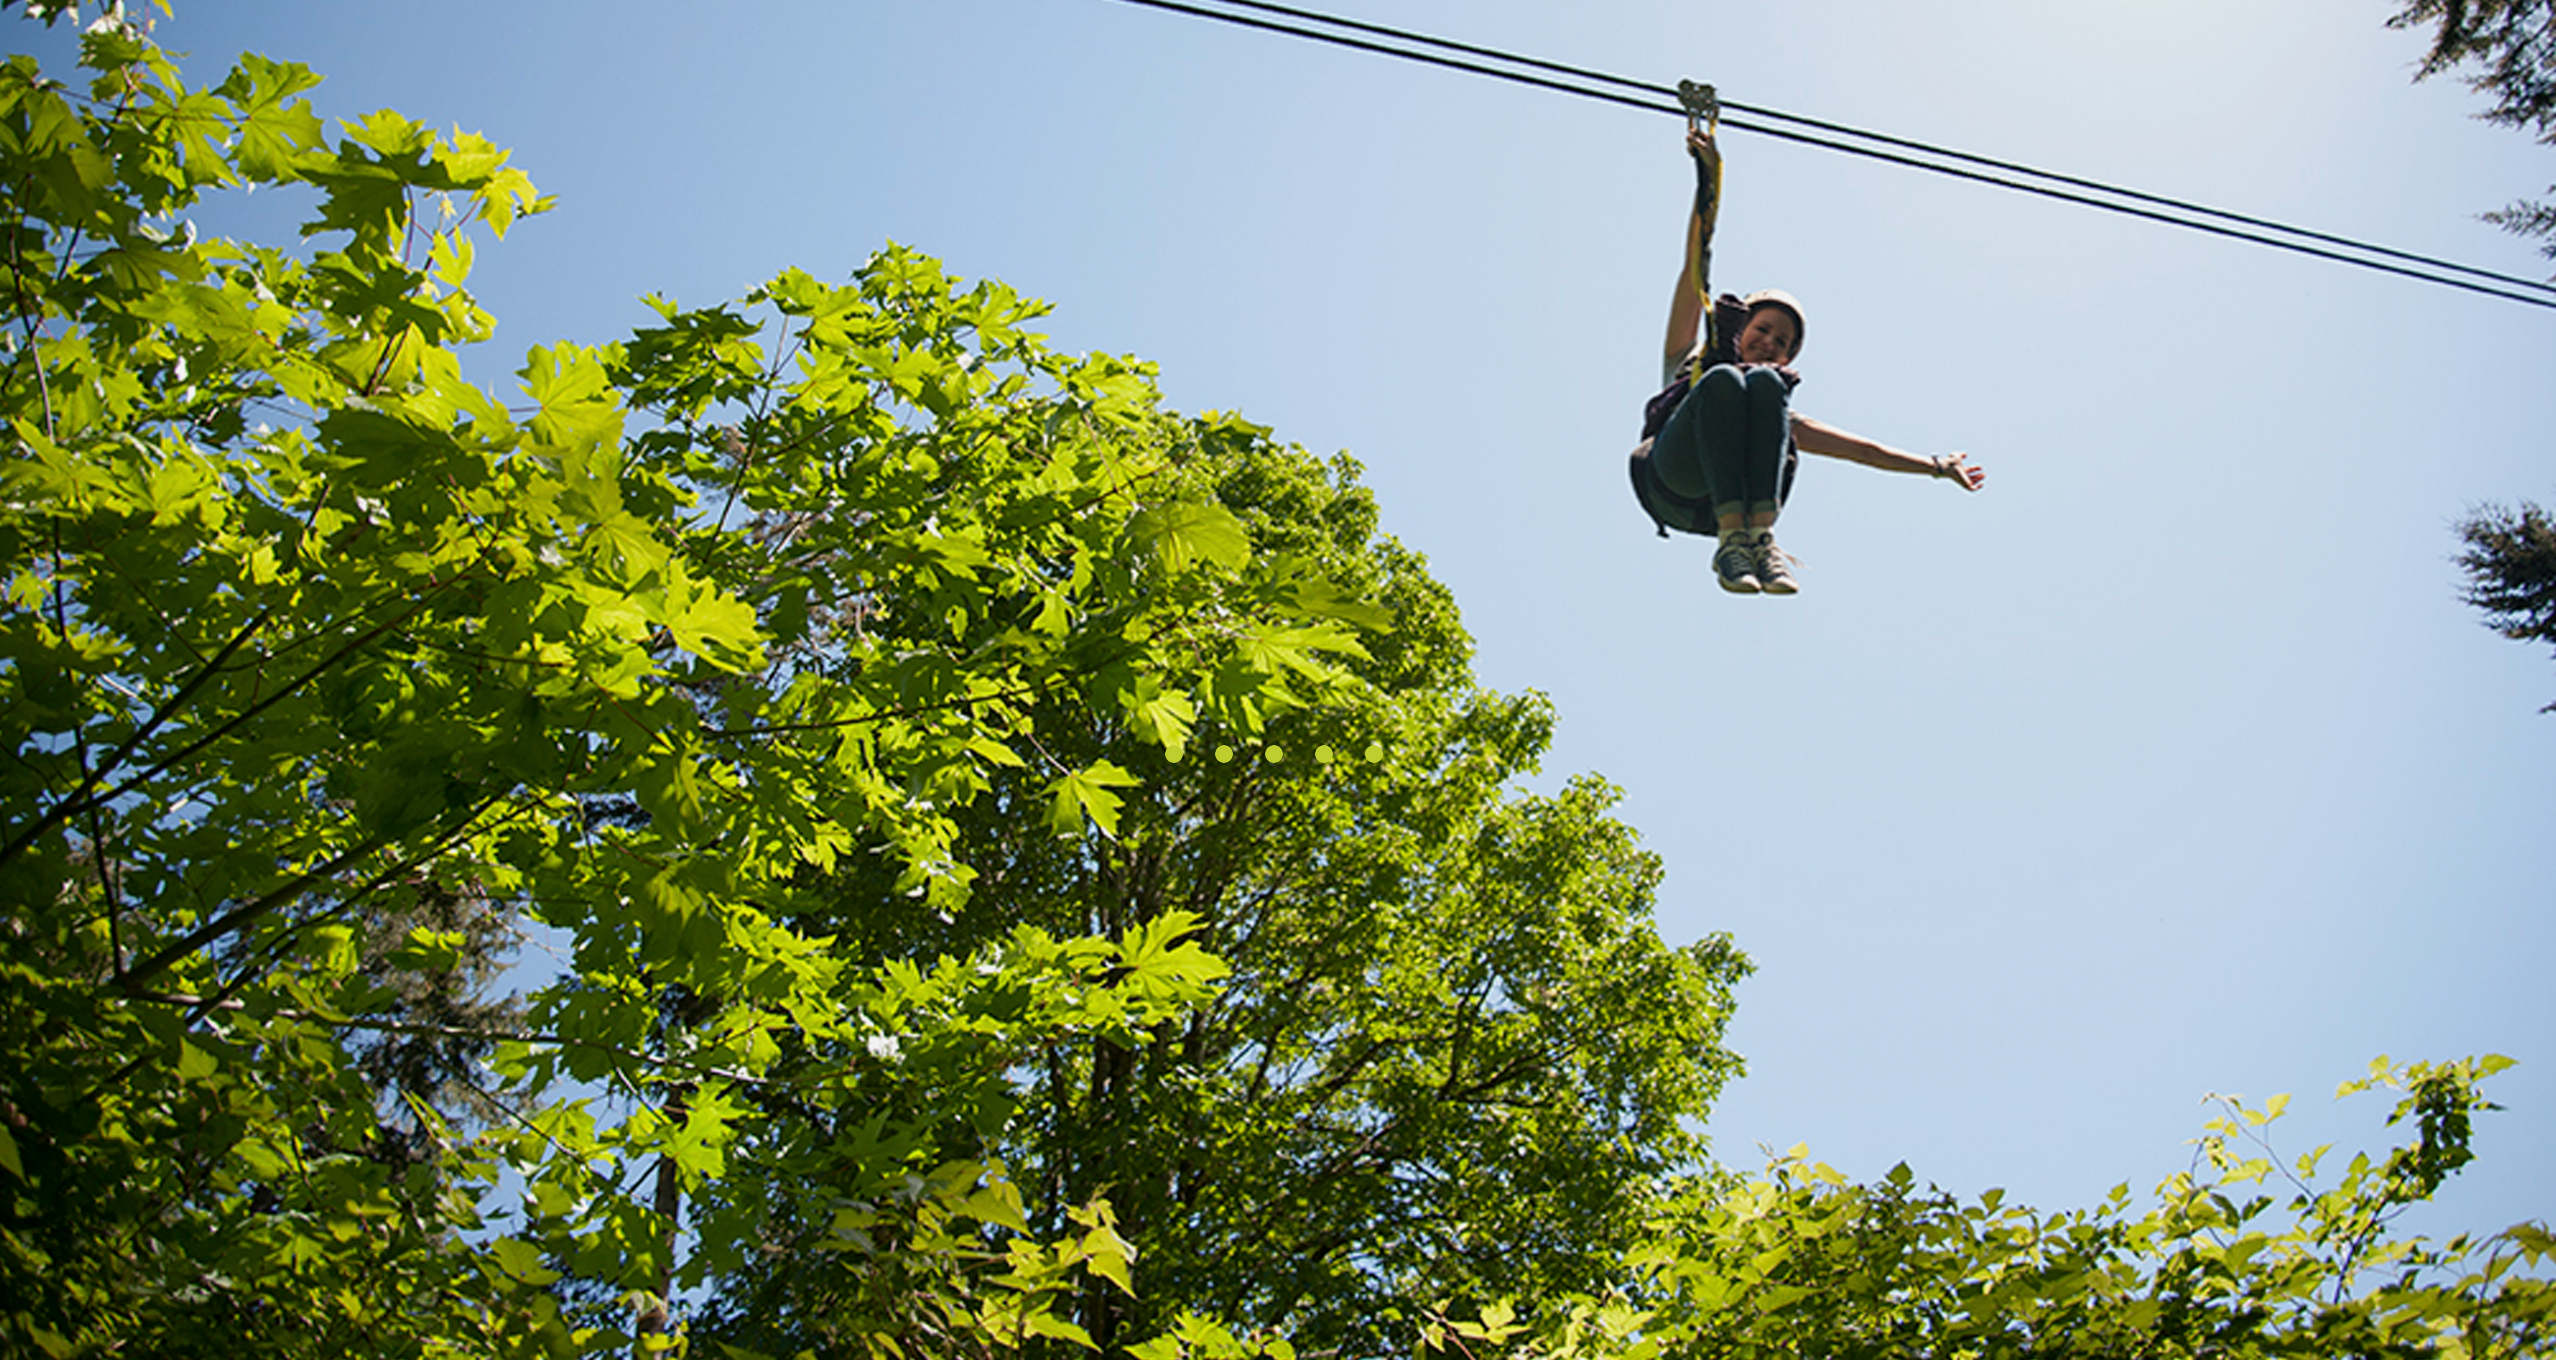 Person Zip Lining & CANOPY TOURS NW | ZIPLINE ADVENTURES